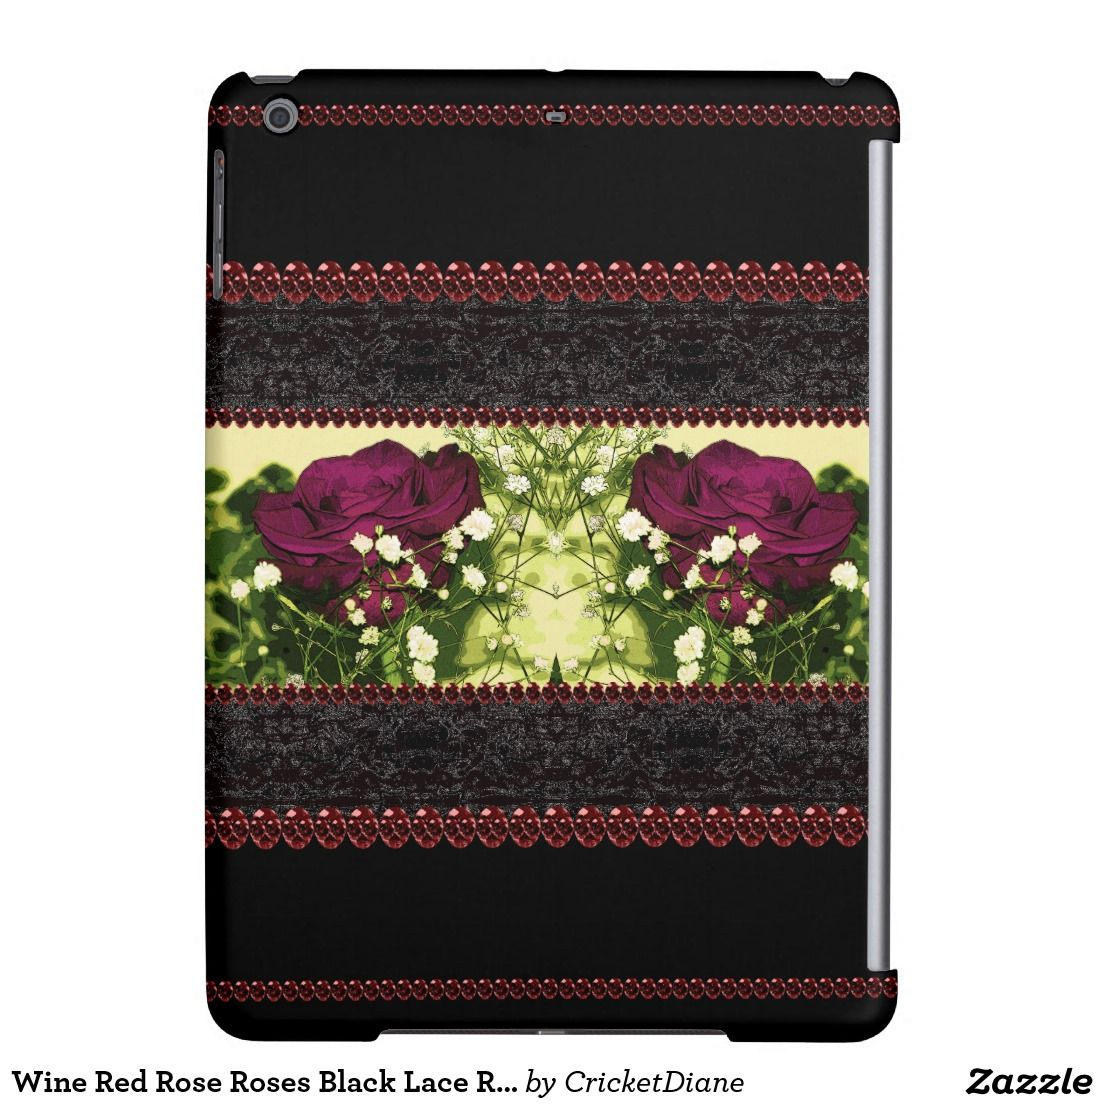 cd2a3bca1fe Wine Red Rose Roses Black Lace Romantic Goth Case For iPad Air. Find this  Pin and more on Goth Steampunk Victorian Gothic Cosplay ...